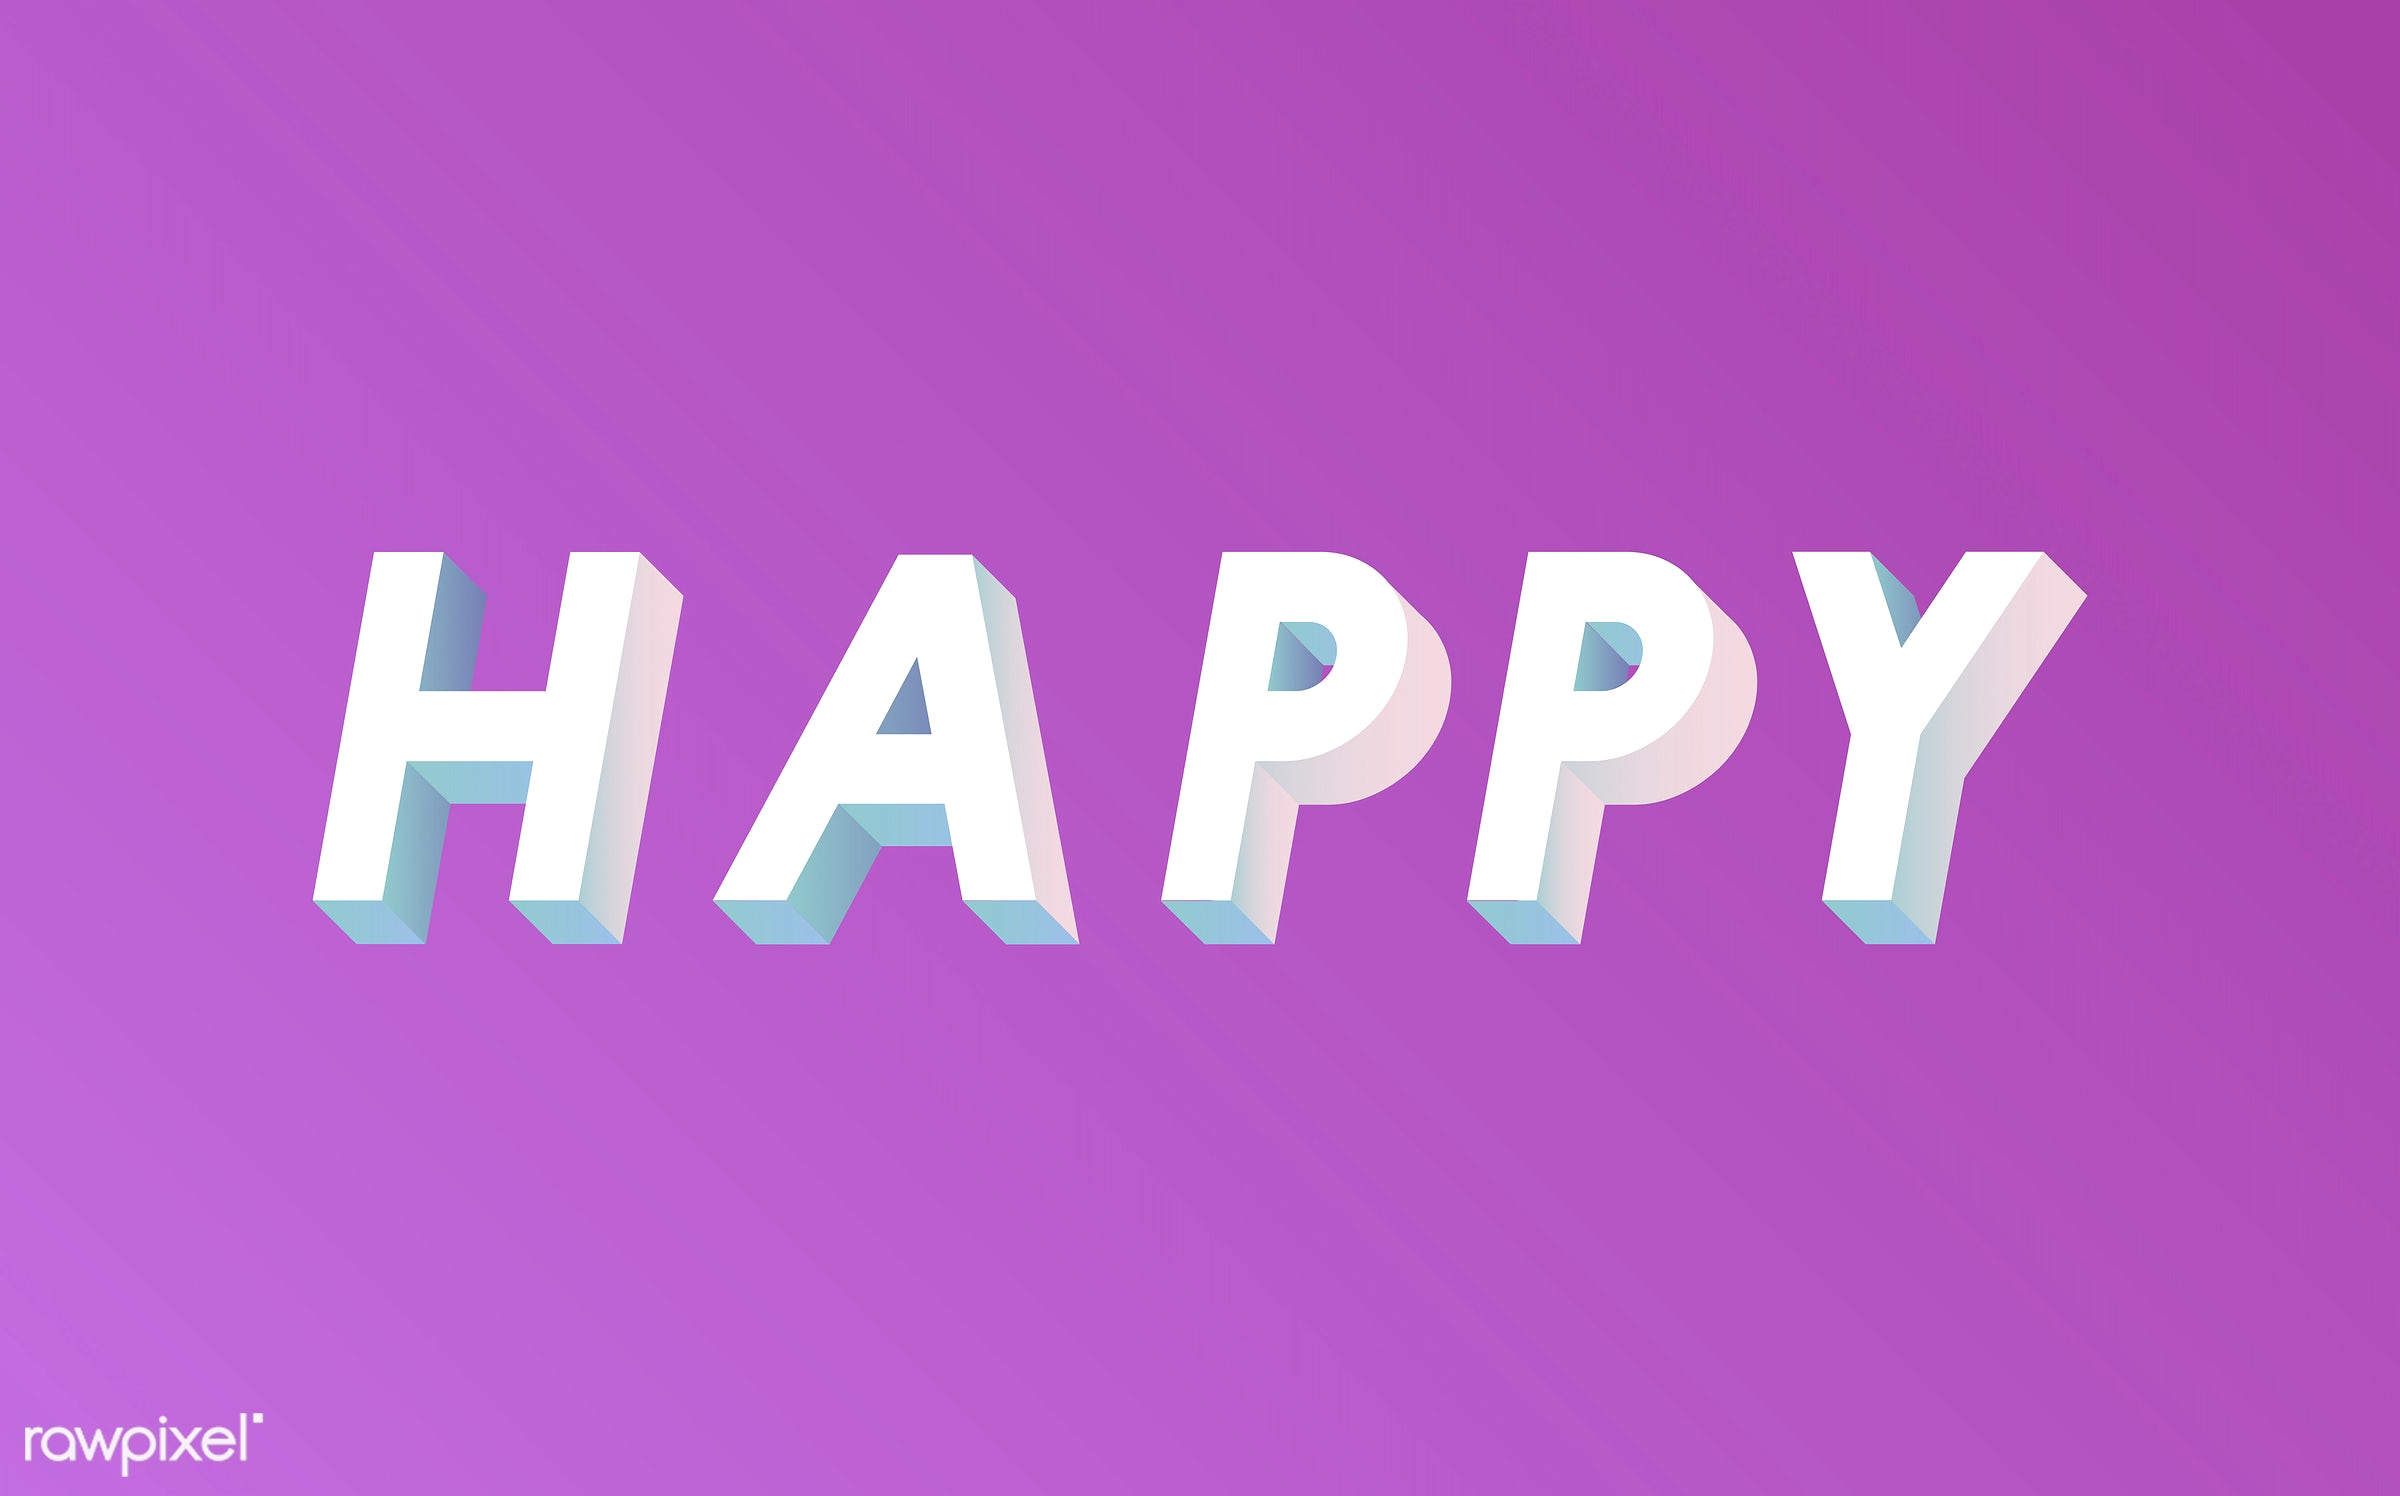 neon, colorful, 3d, three dimensional, vector, illustration, graphic, word, pink, white, happy, happiness, be happy